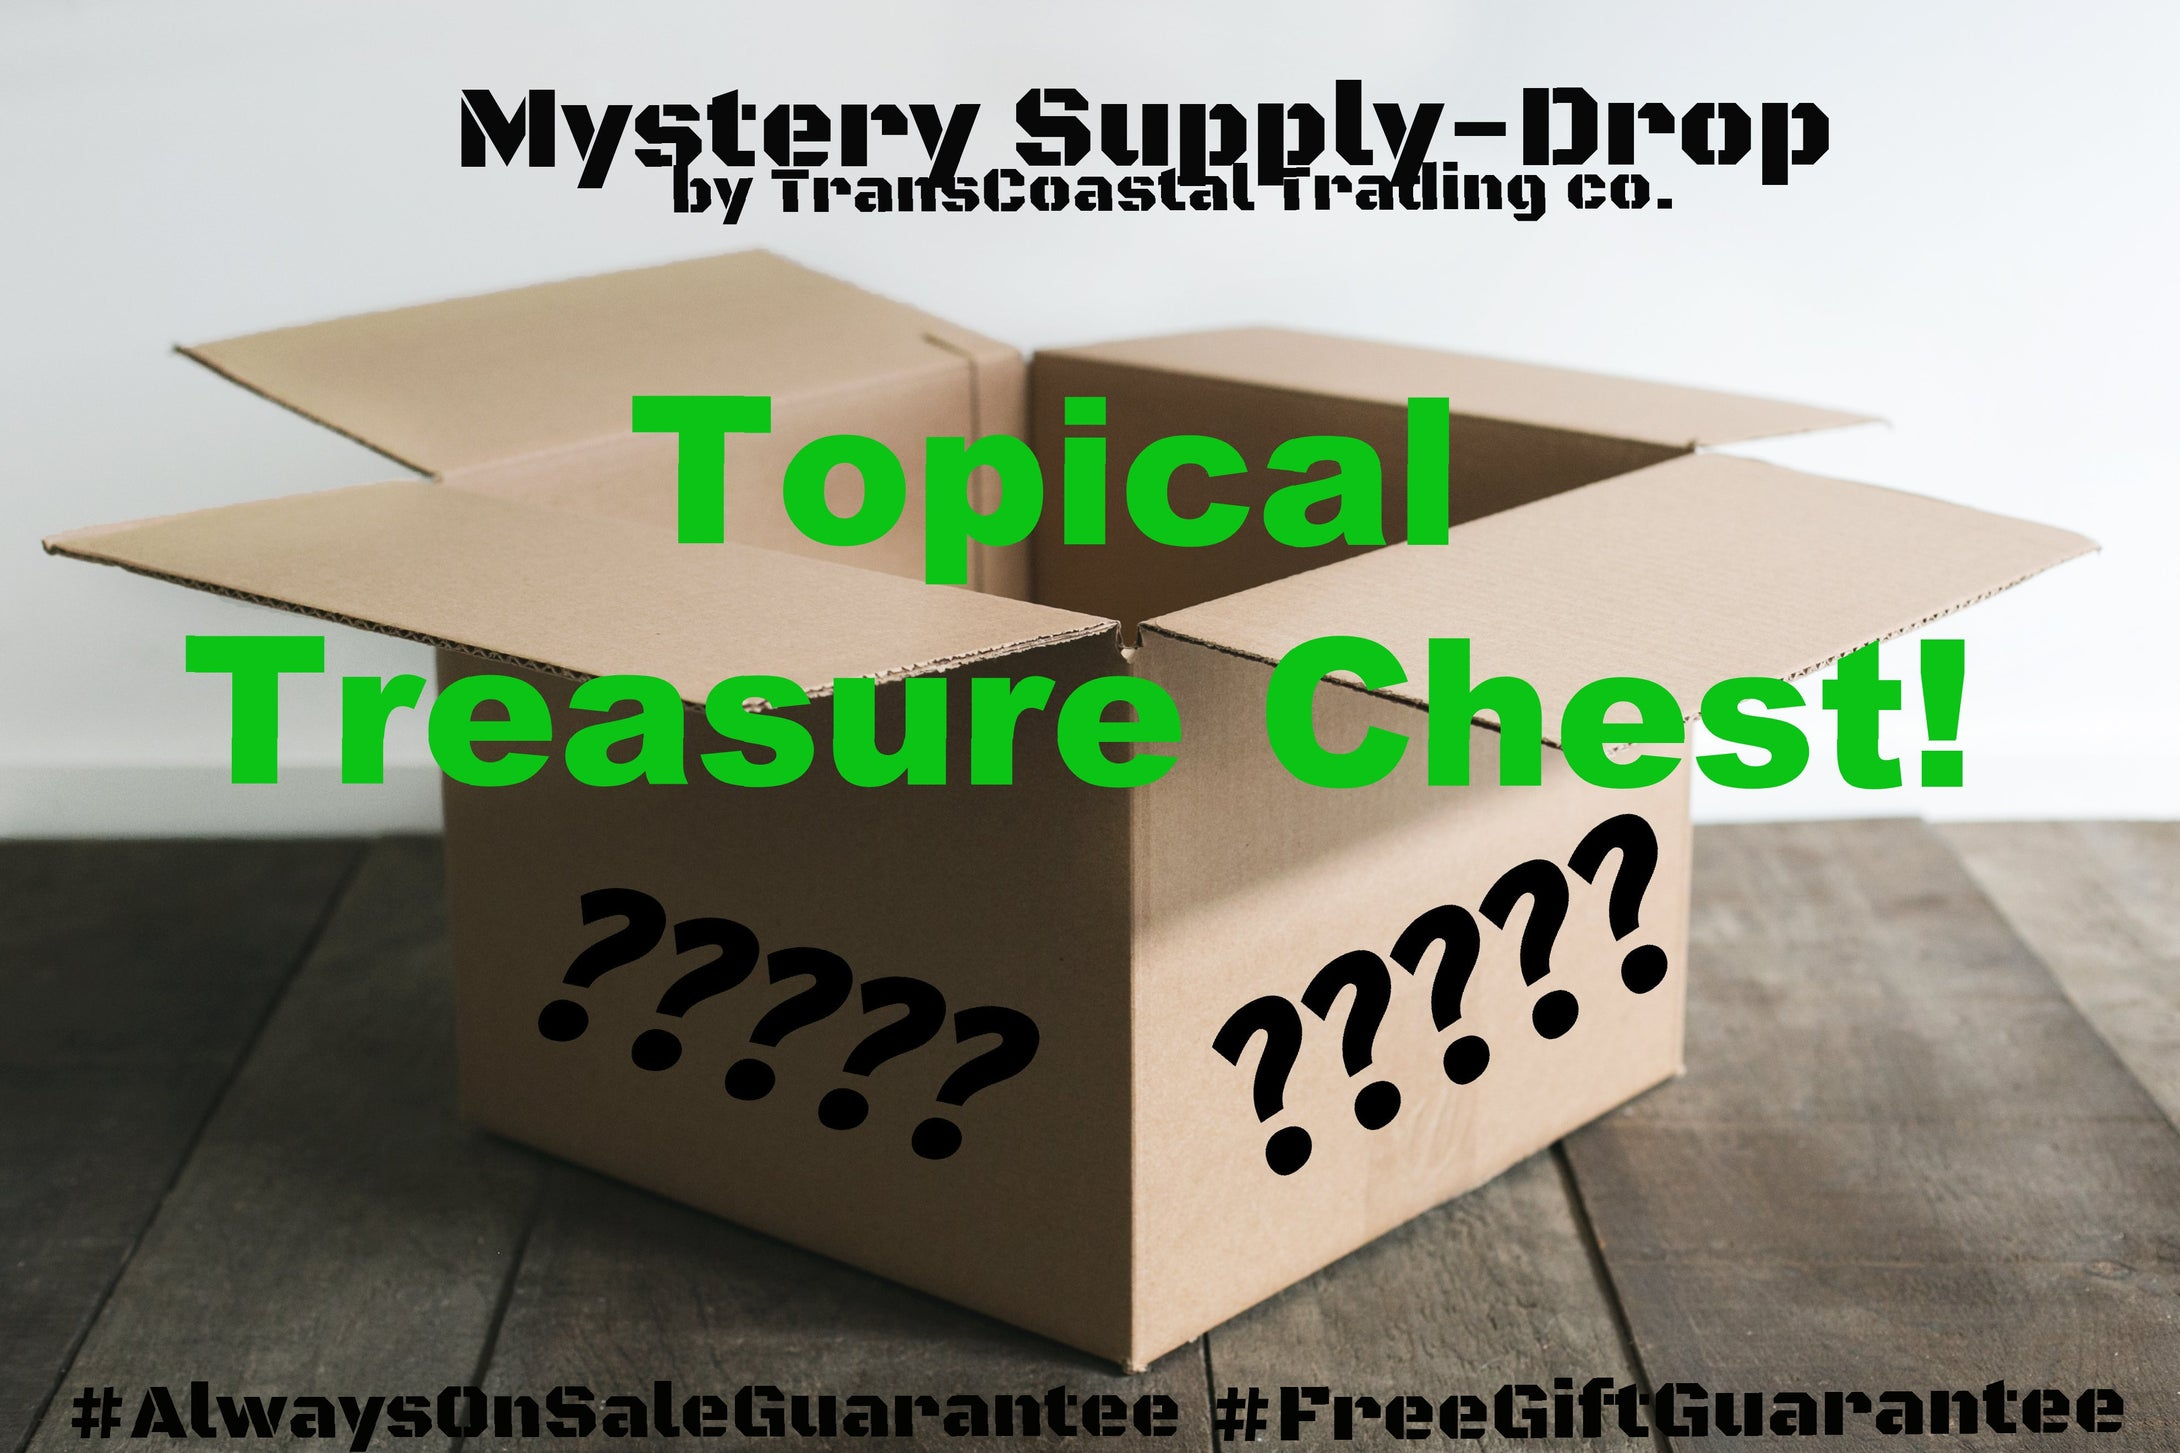 The Love-Guru Topical Treasure-Chest